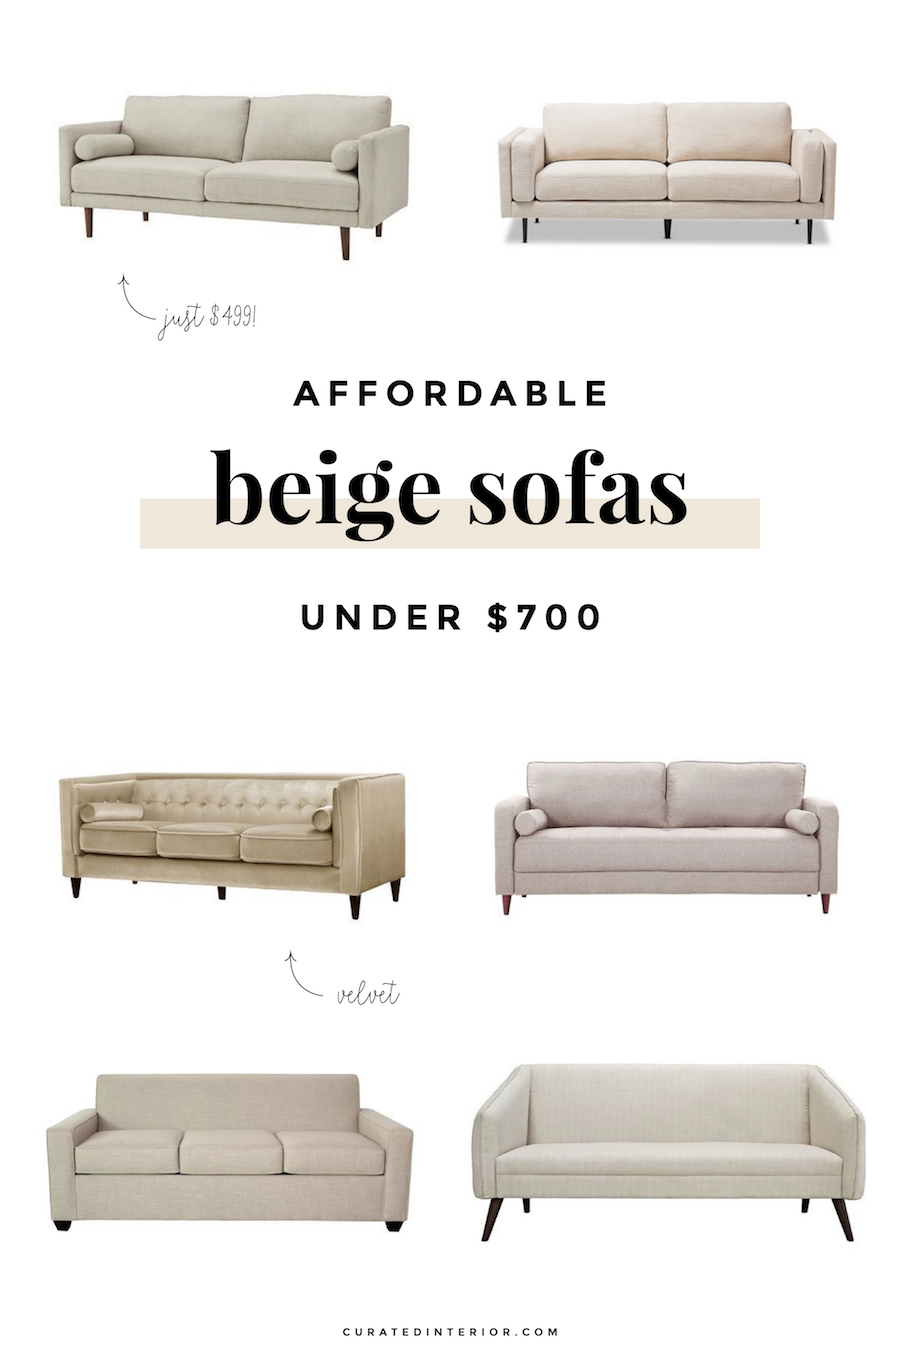 Affordable Beige Sofas Under $700 for the Living Room